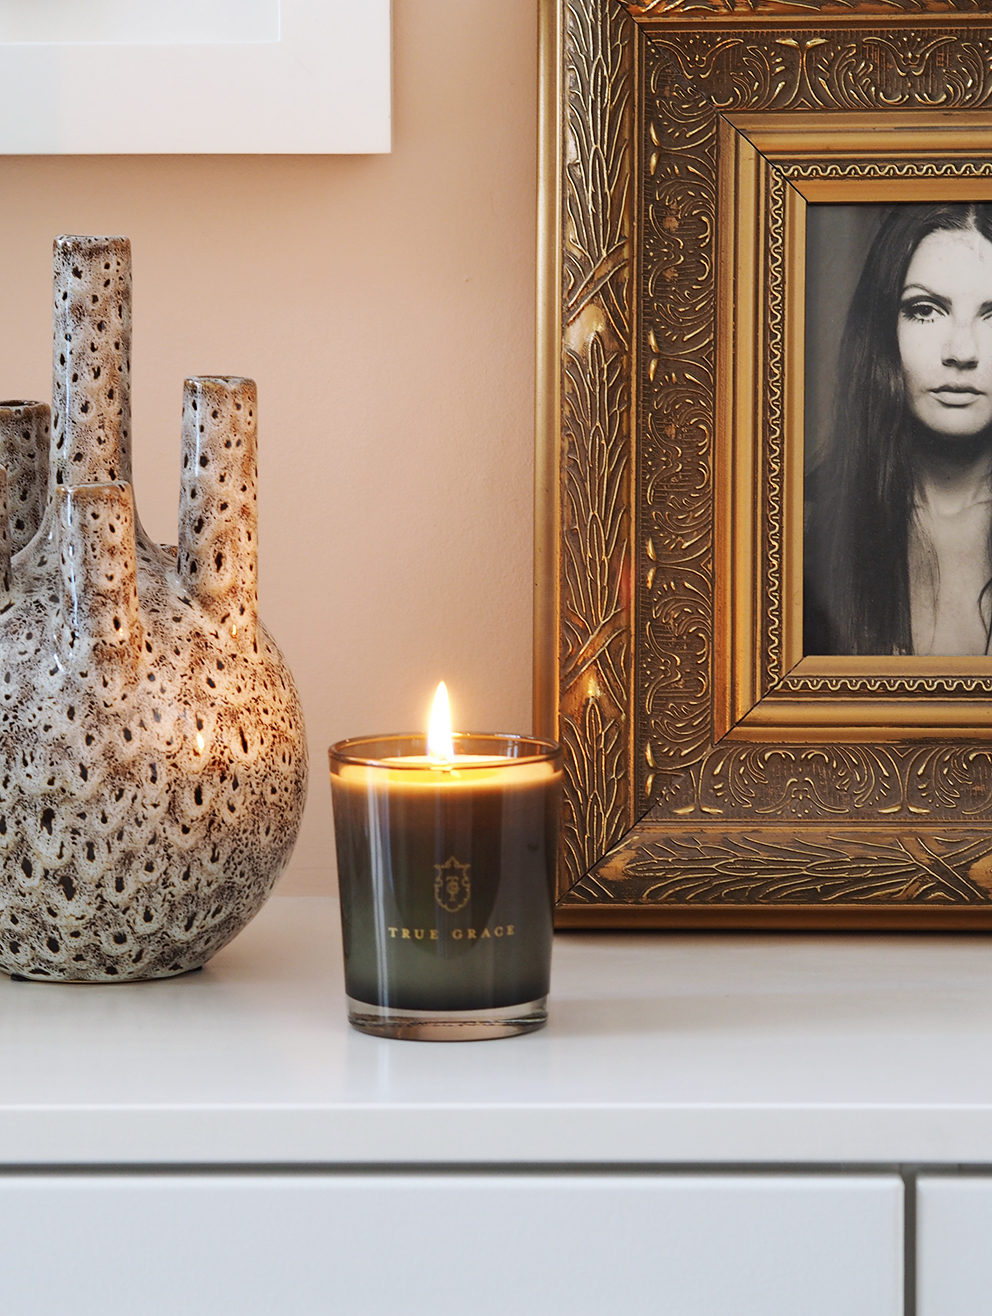 My Summer Dining Room - French For Pineapple Blog - close up of lit scented candle on sidebaord with lung like vase object and ornate framed photograph